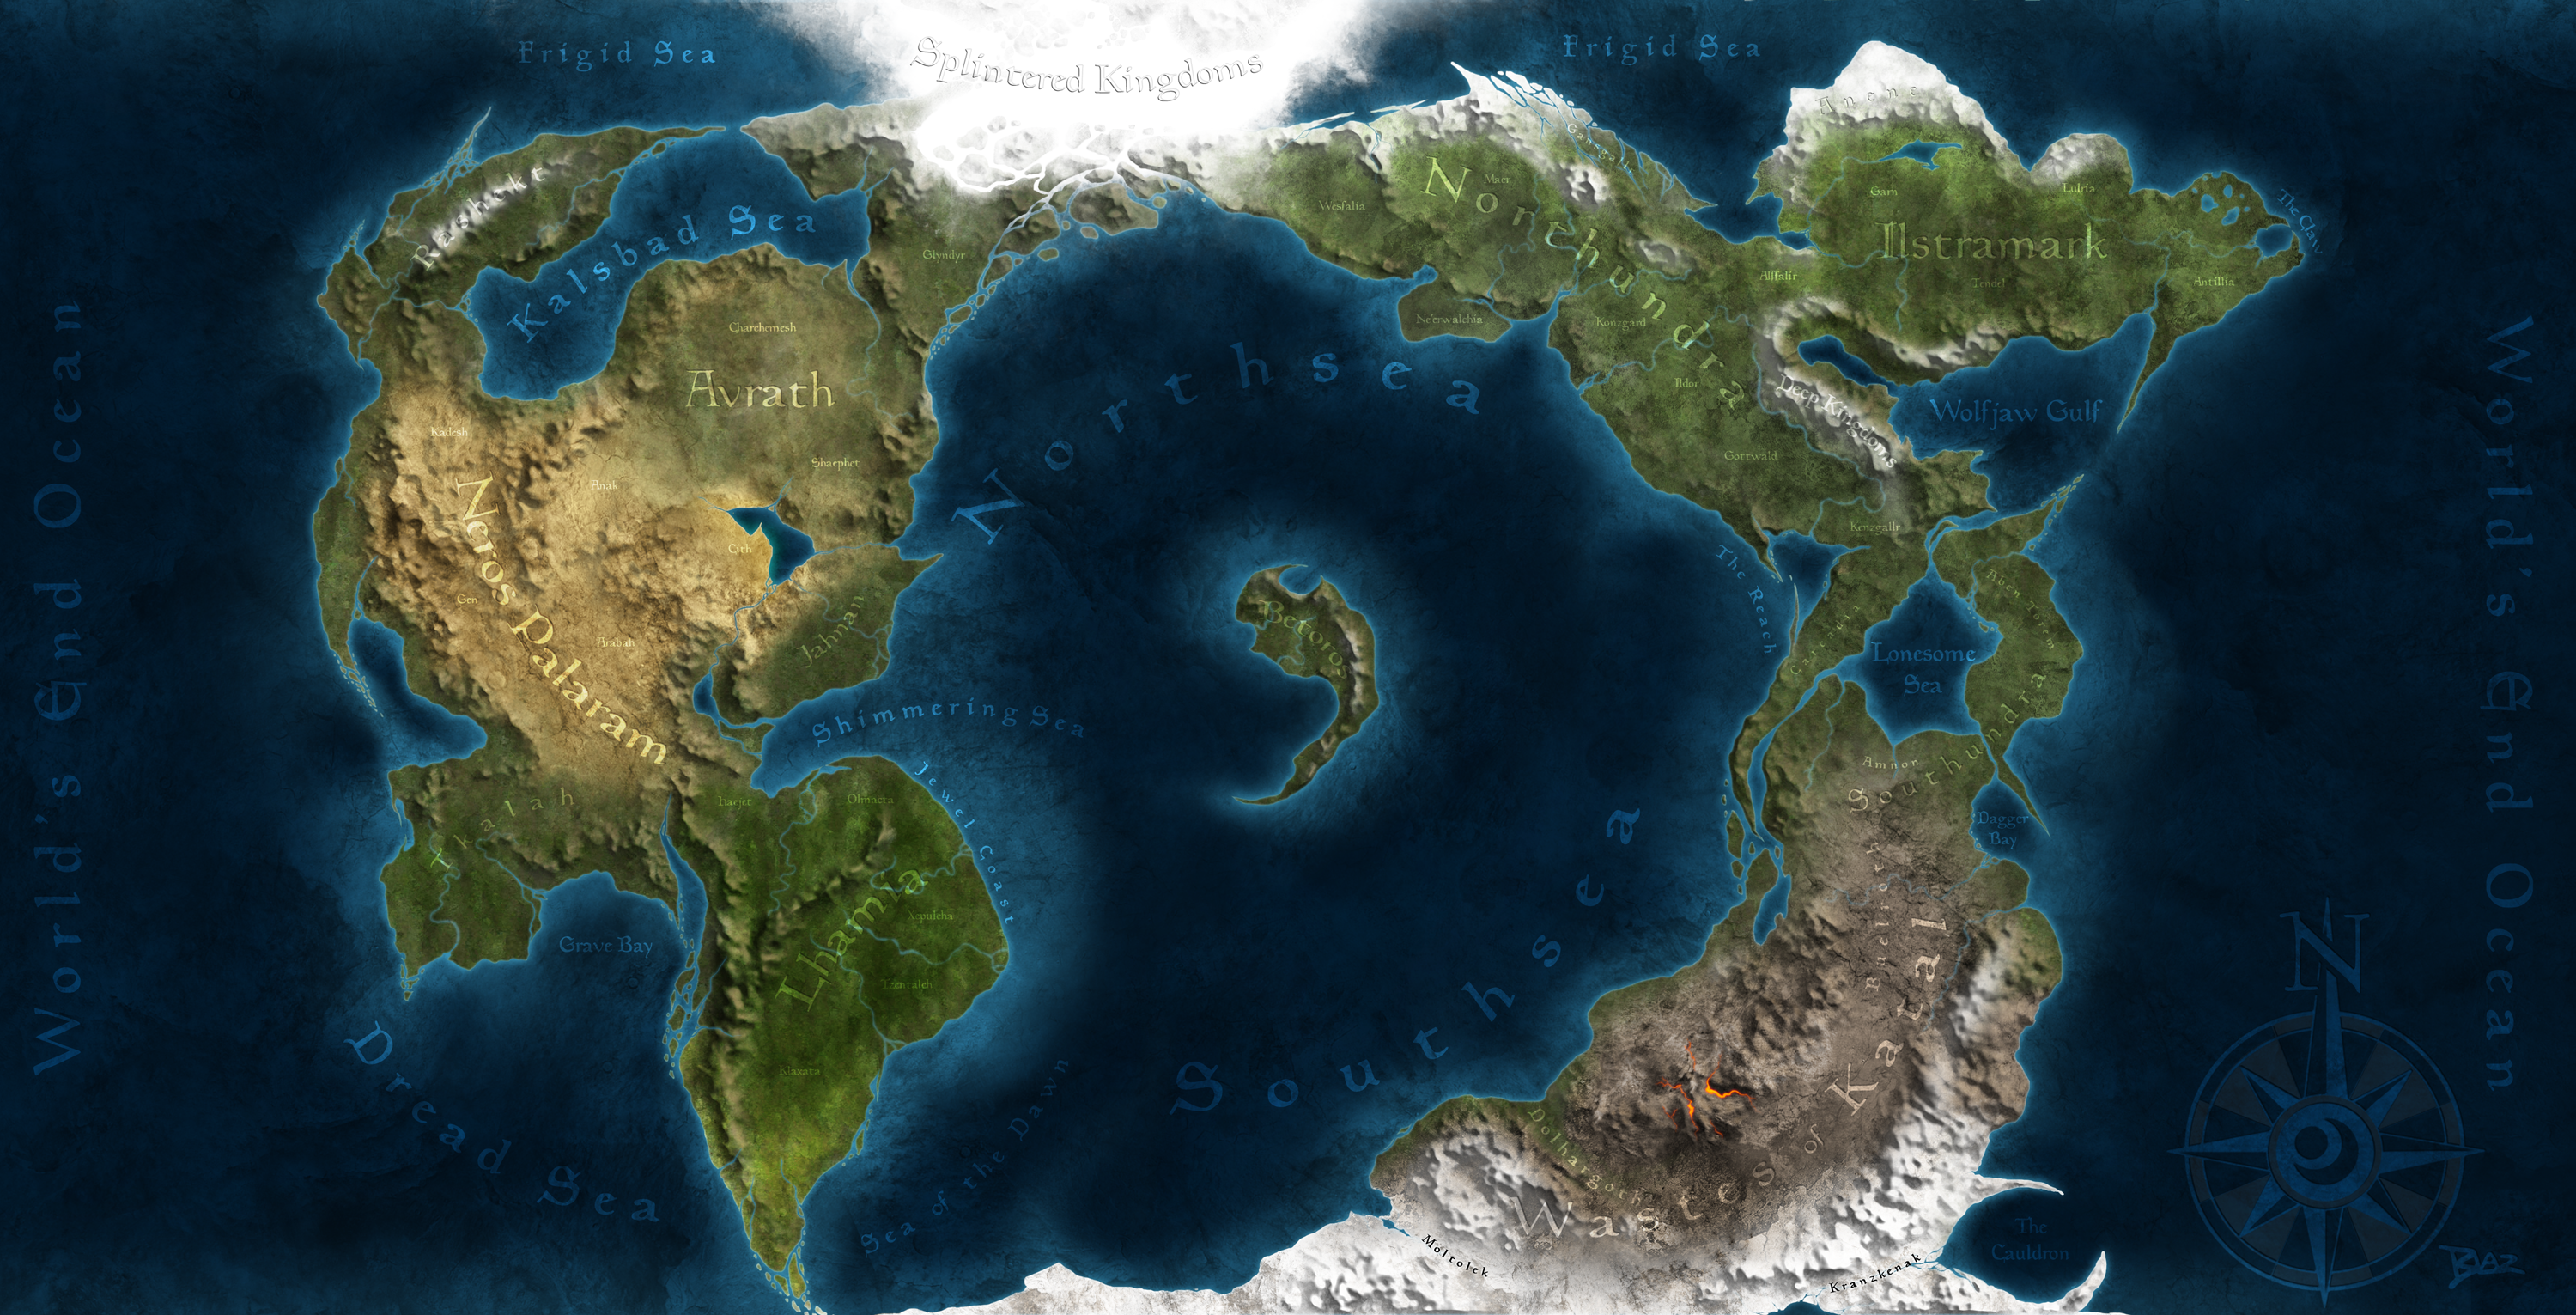 Rpg World Map Generator Imaginary worlds maps on Pinterest | Maps, Cartography and Map Of